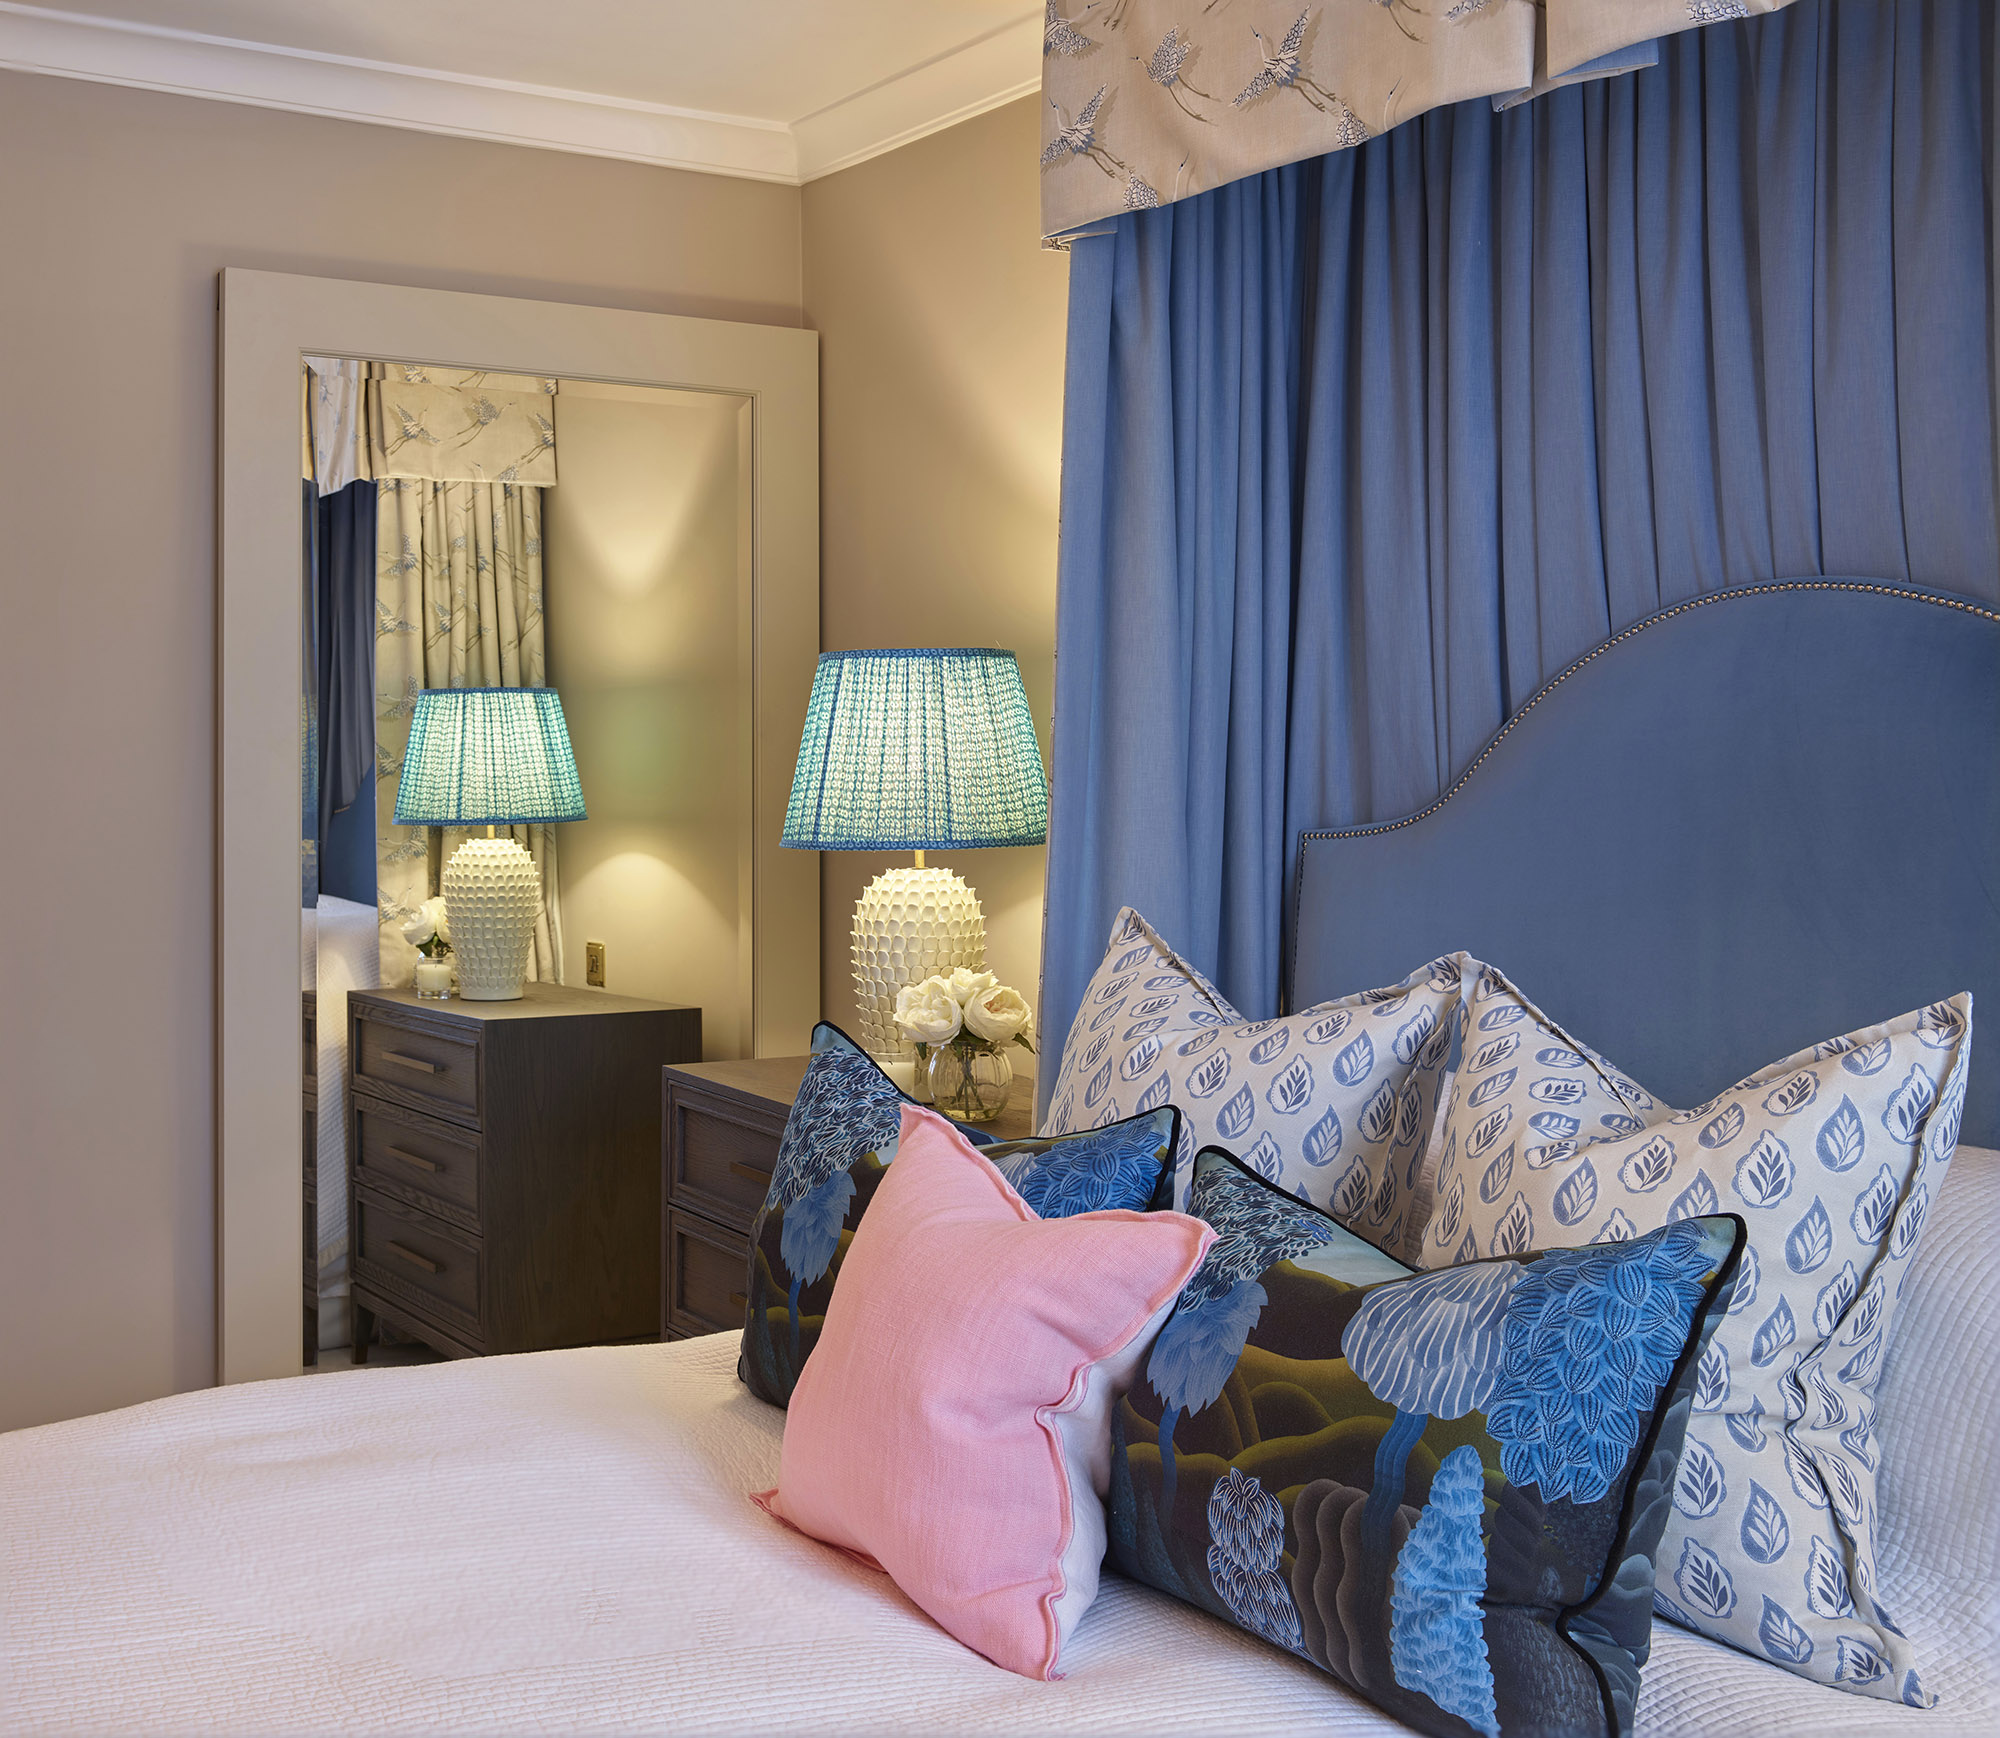 Chelsea Townhouse Guest Bedroom Lighting and Cushions